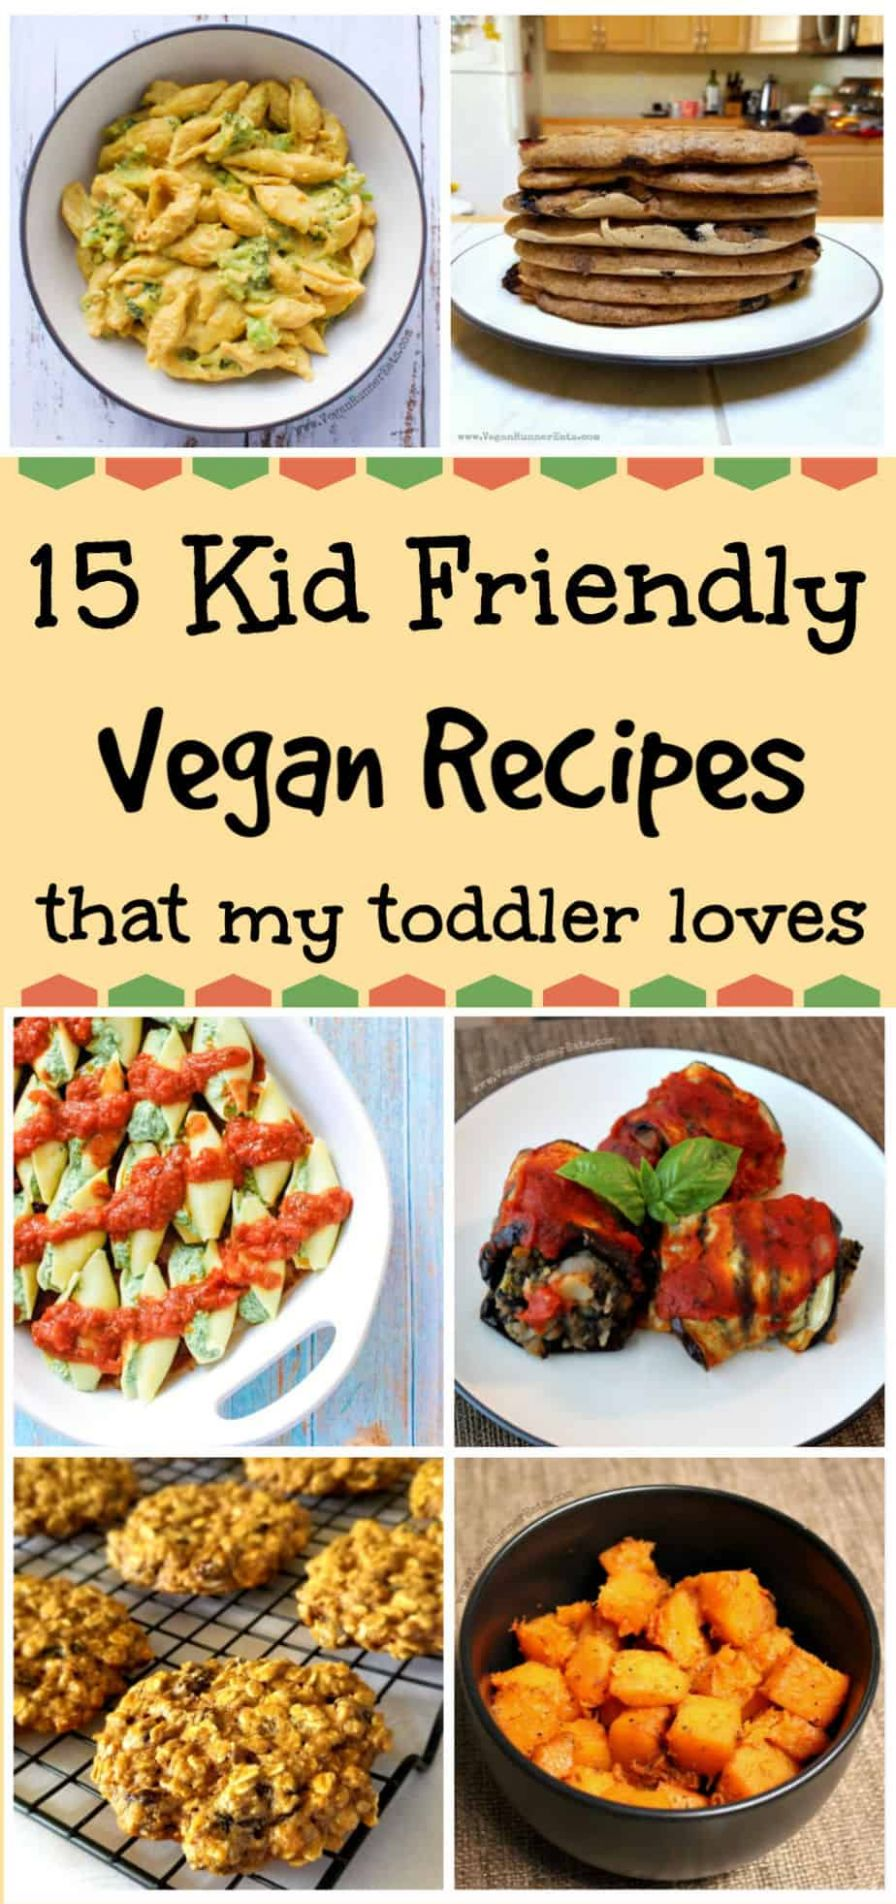 8 Kid Friendly Vegan Recipes My Toddler Can't Get Enough Of